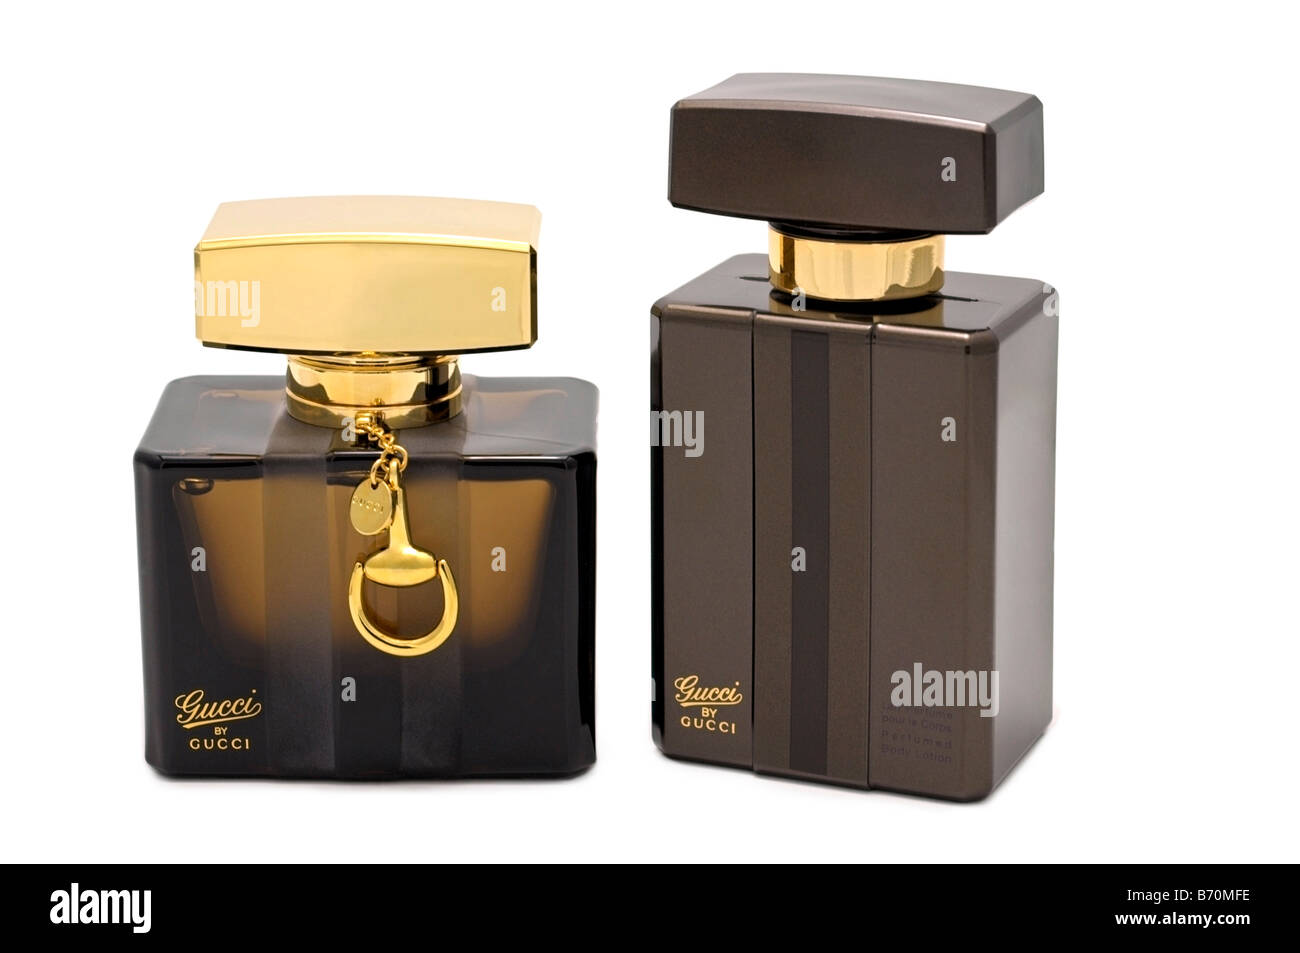 Gucci by Gucci Perfume and Lotion - Stock Image